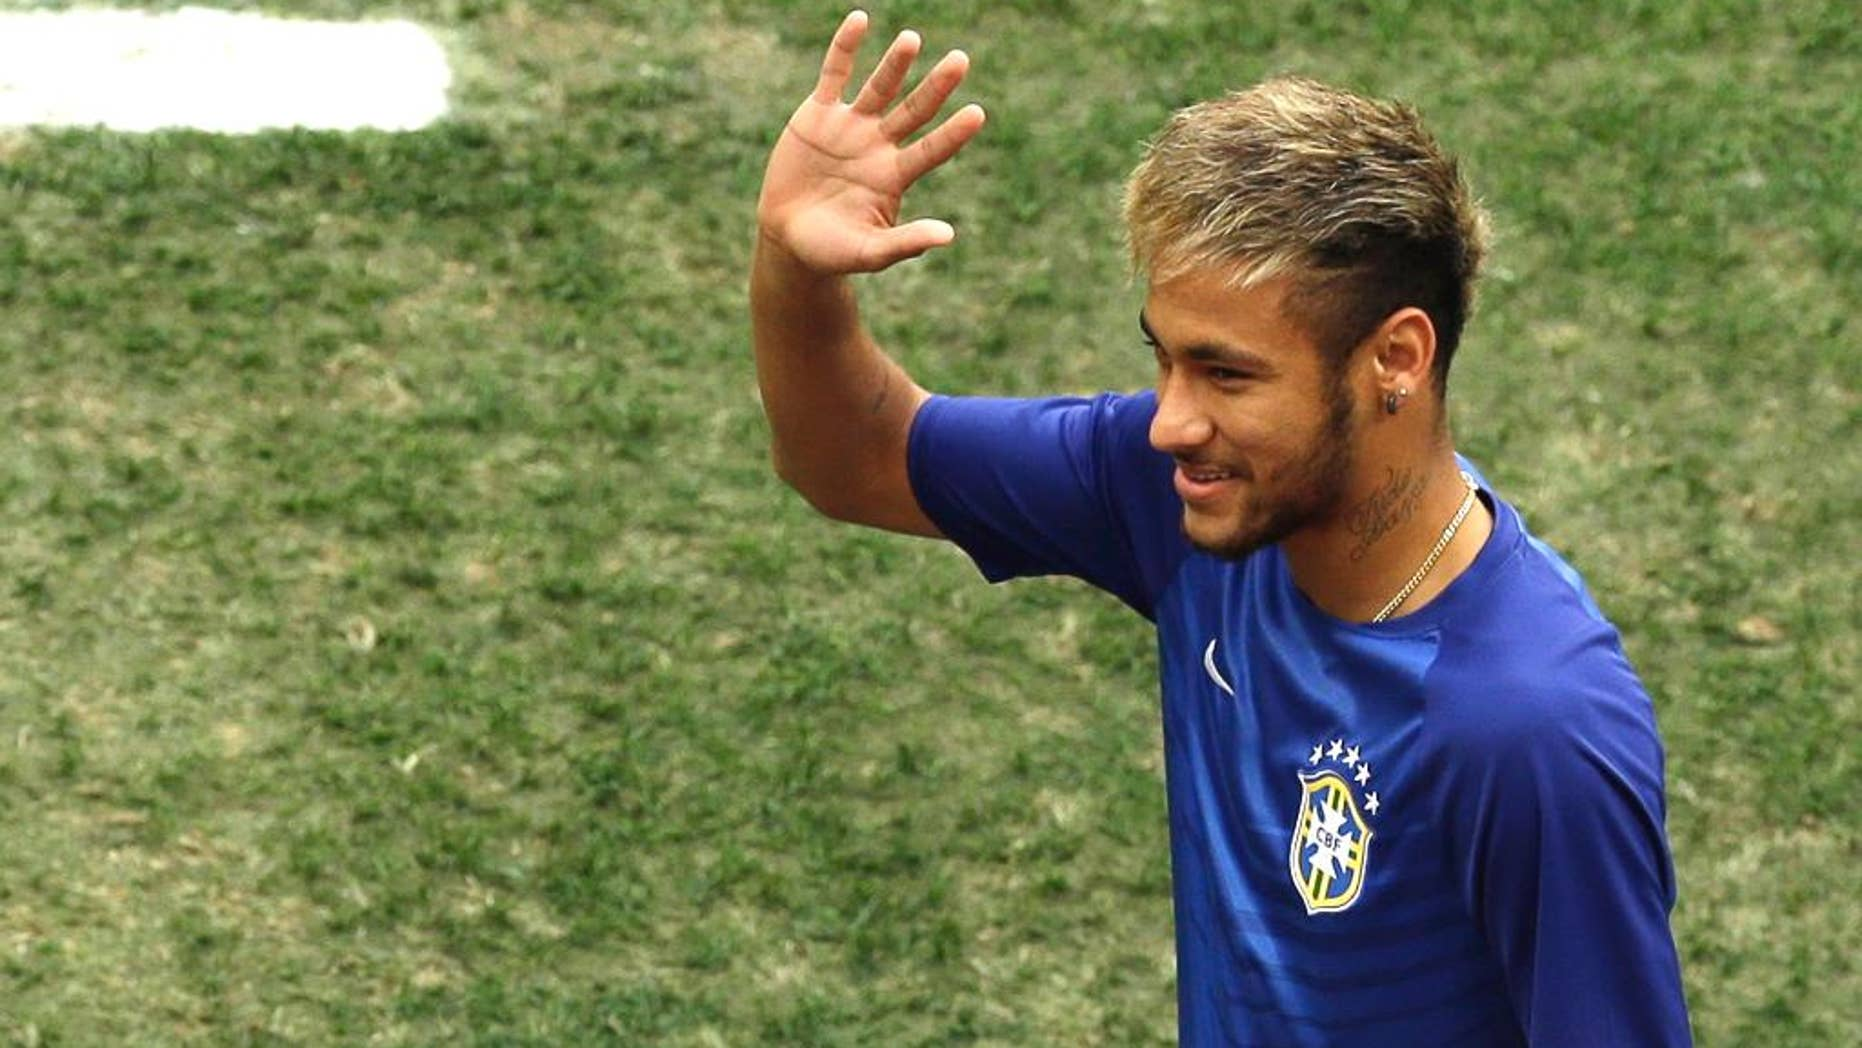 Brazil's Neymar waves as he enters the pitch to sit on the bench before the World Cup third-place soccer match between Brazil and the Netherlands at the Estadio Nacional in Brasilia, Brazil, Saturday, July 12, 2014. (AP Photo/Themba Hadebe)